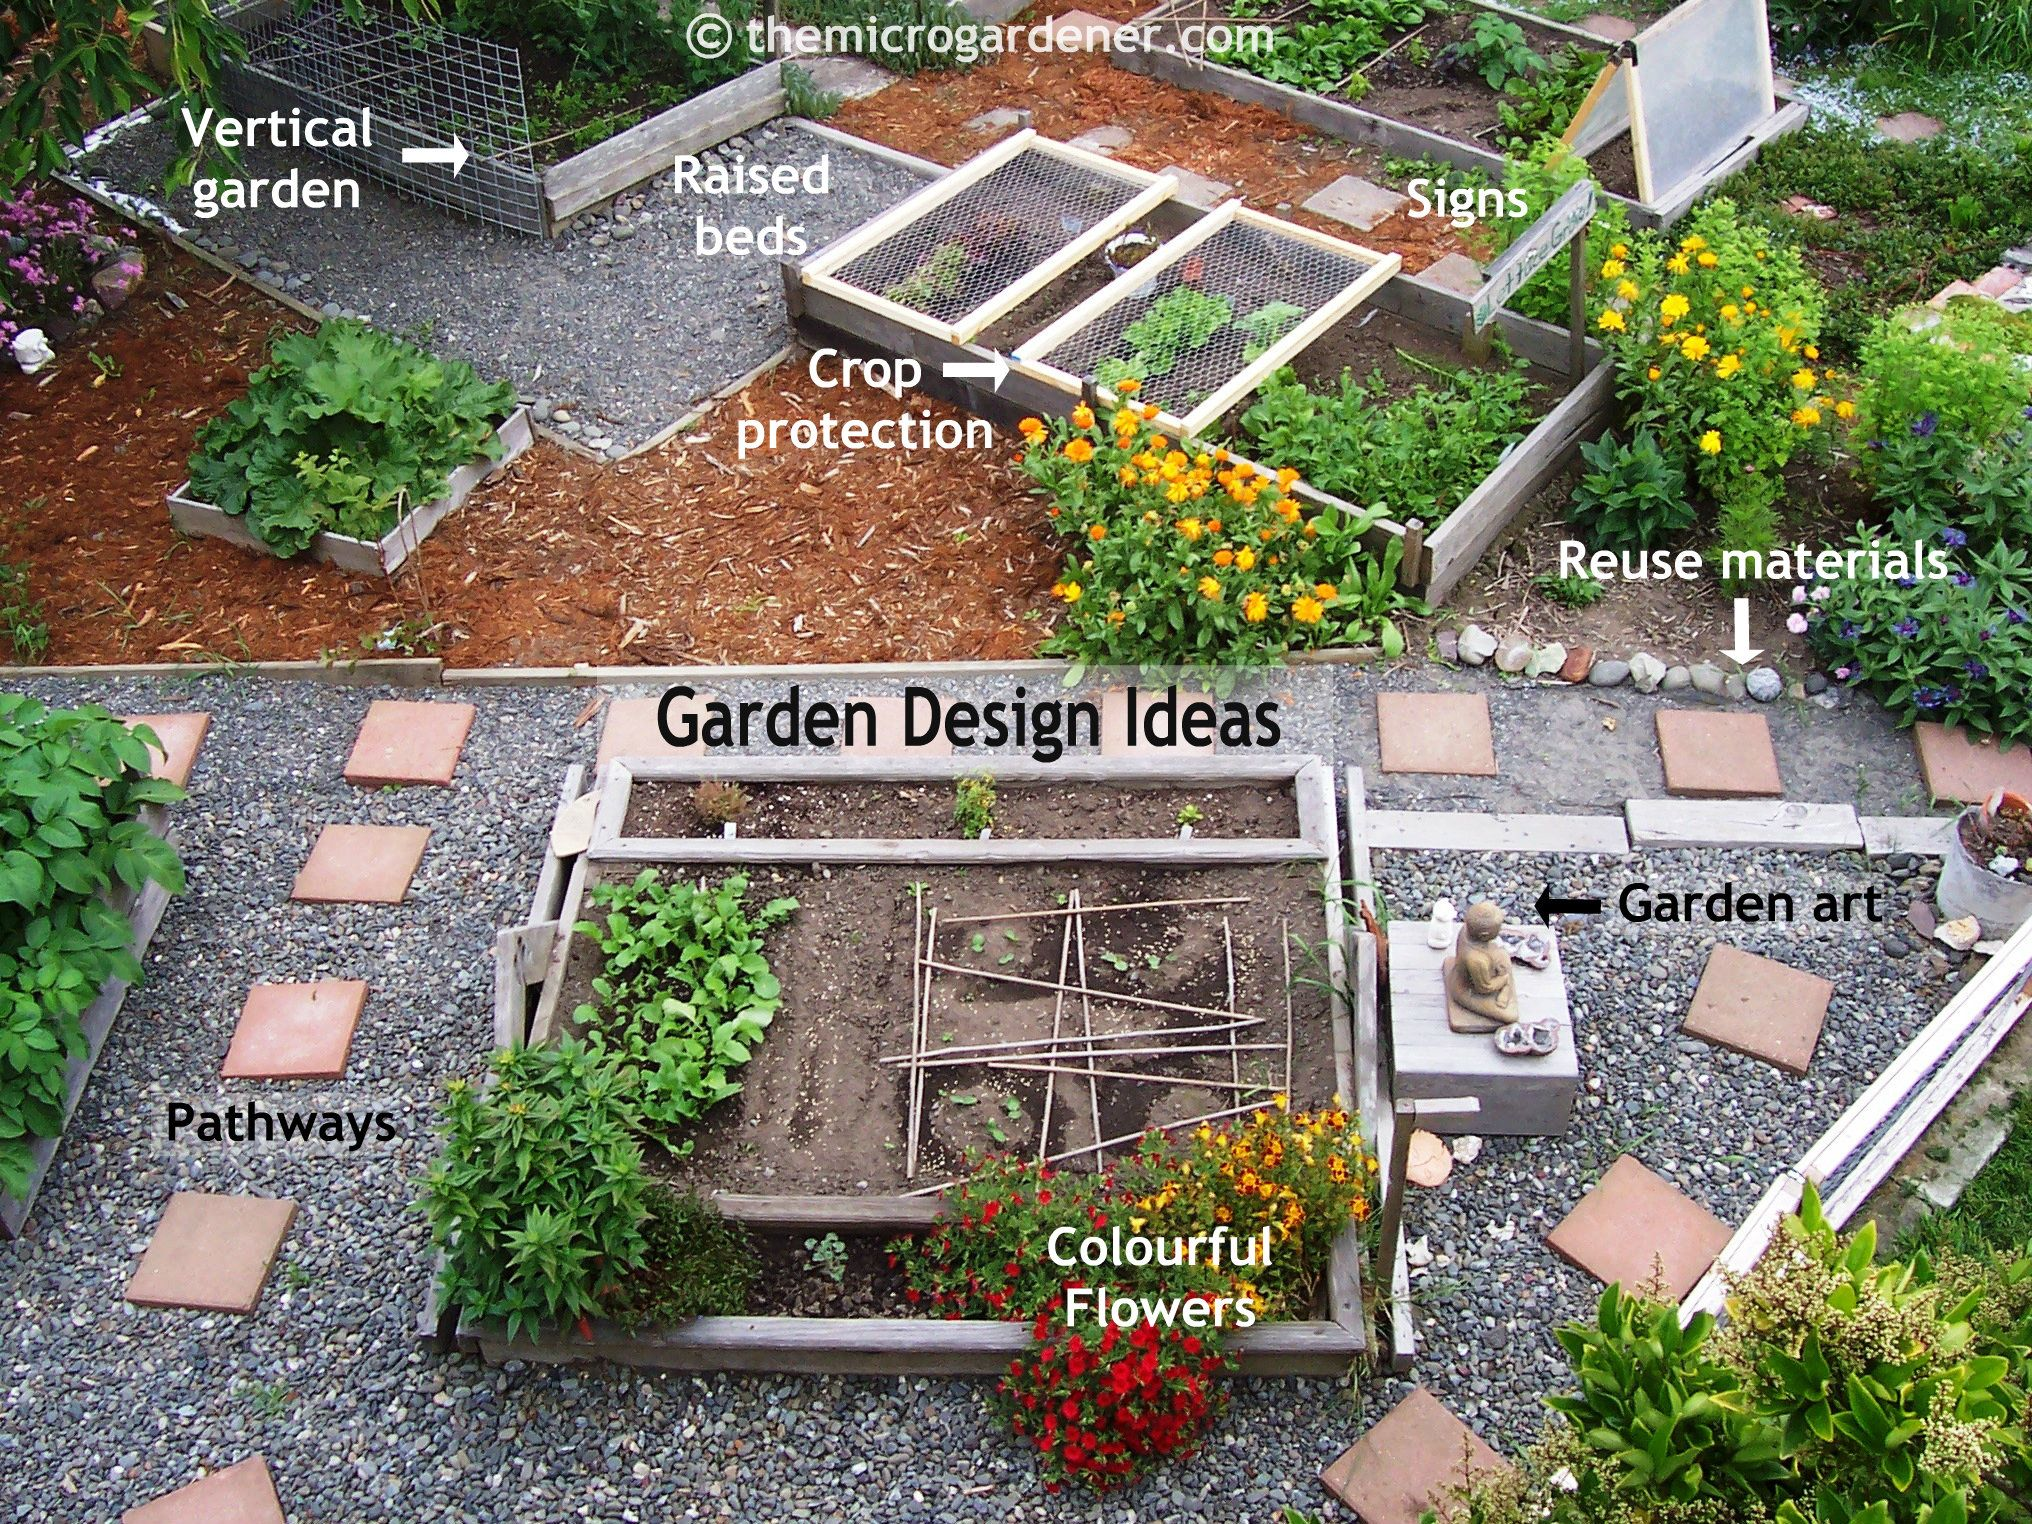 Small garden design ideas on pinterest vertical gardens for Design my garden ideas